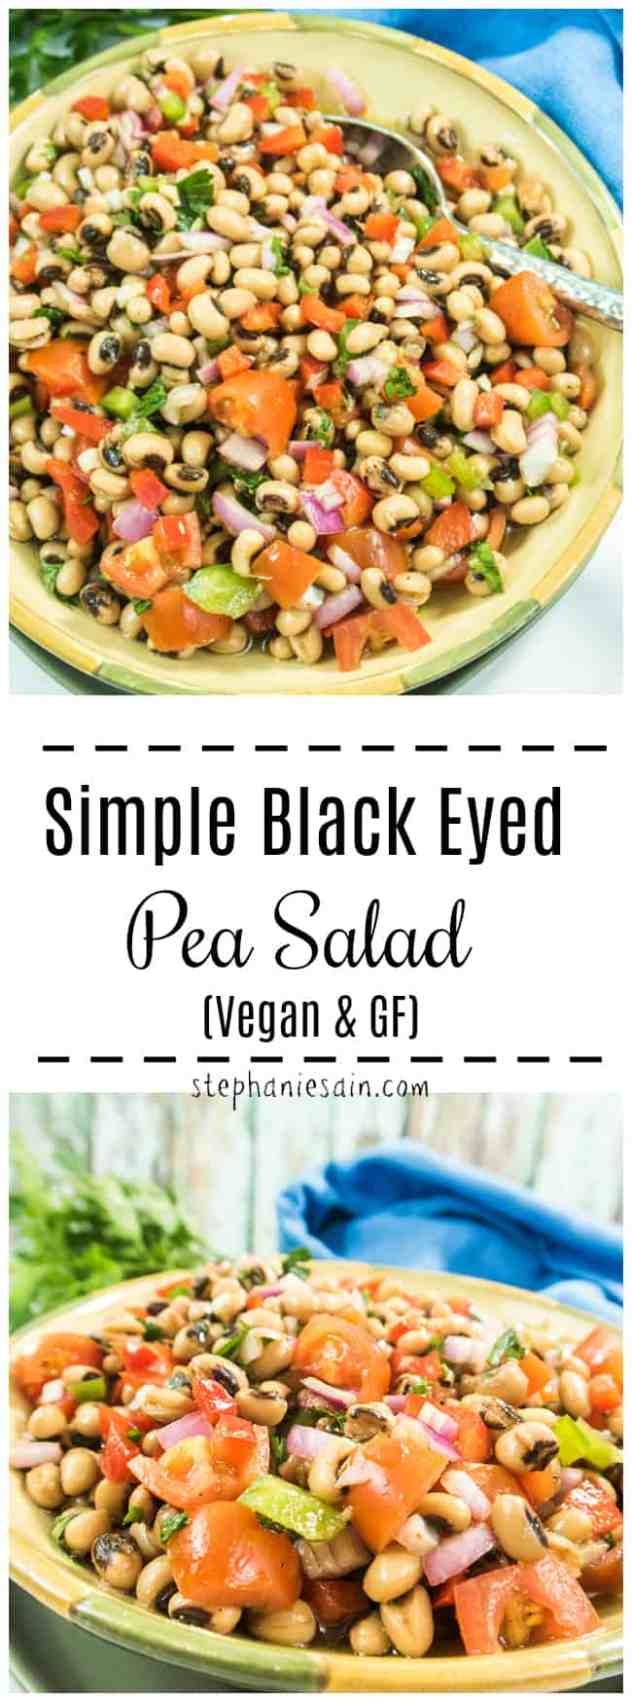 This Simple Black Eyed Pea Salad is loaded with lots of fresh veggies, black eyed peas, and a light vinaigrette dressing. The perfect make ahead salad for all your picnics , cookouts, & gatherings. Vegan & Gluten Free.